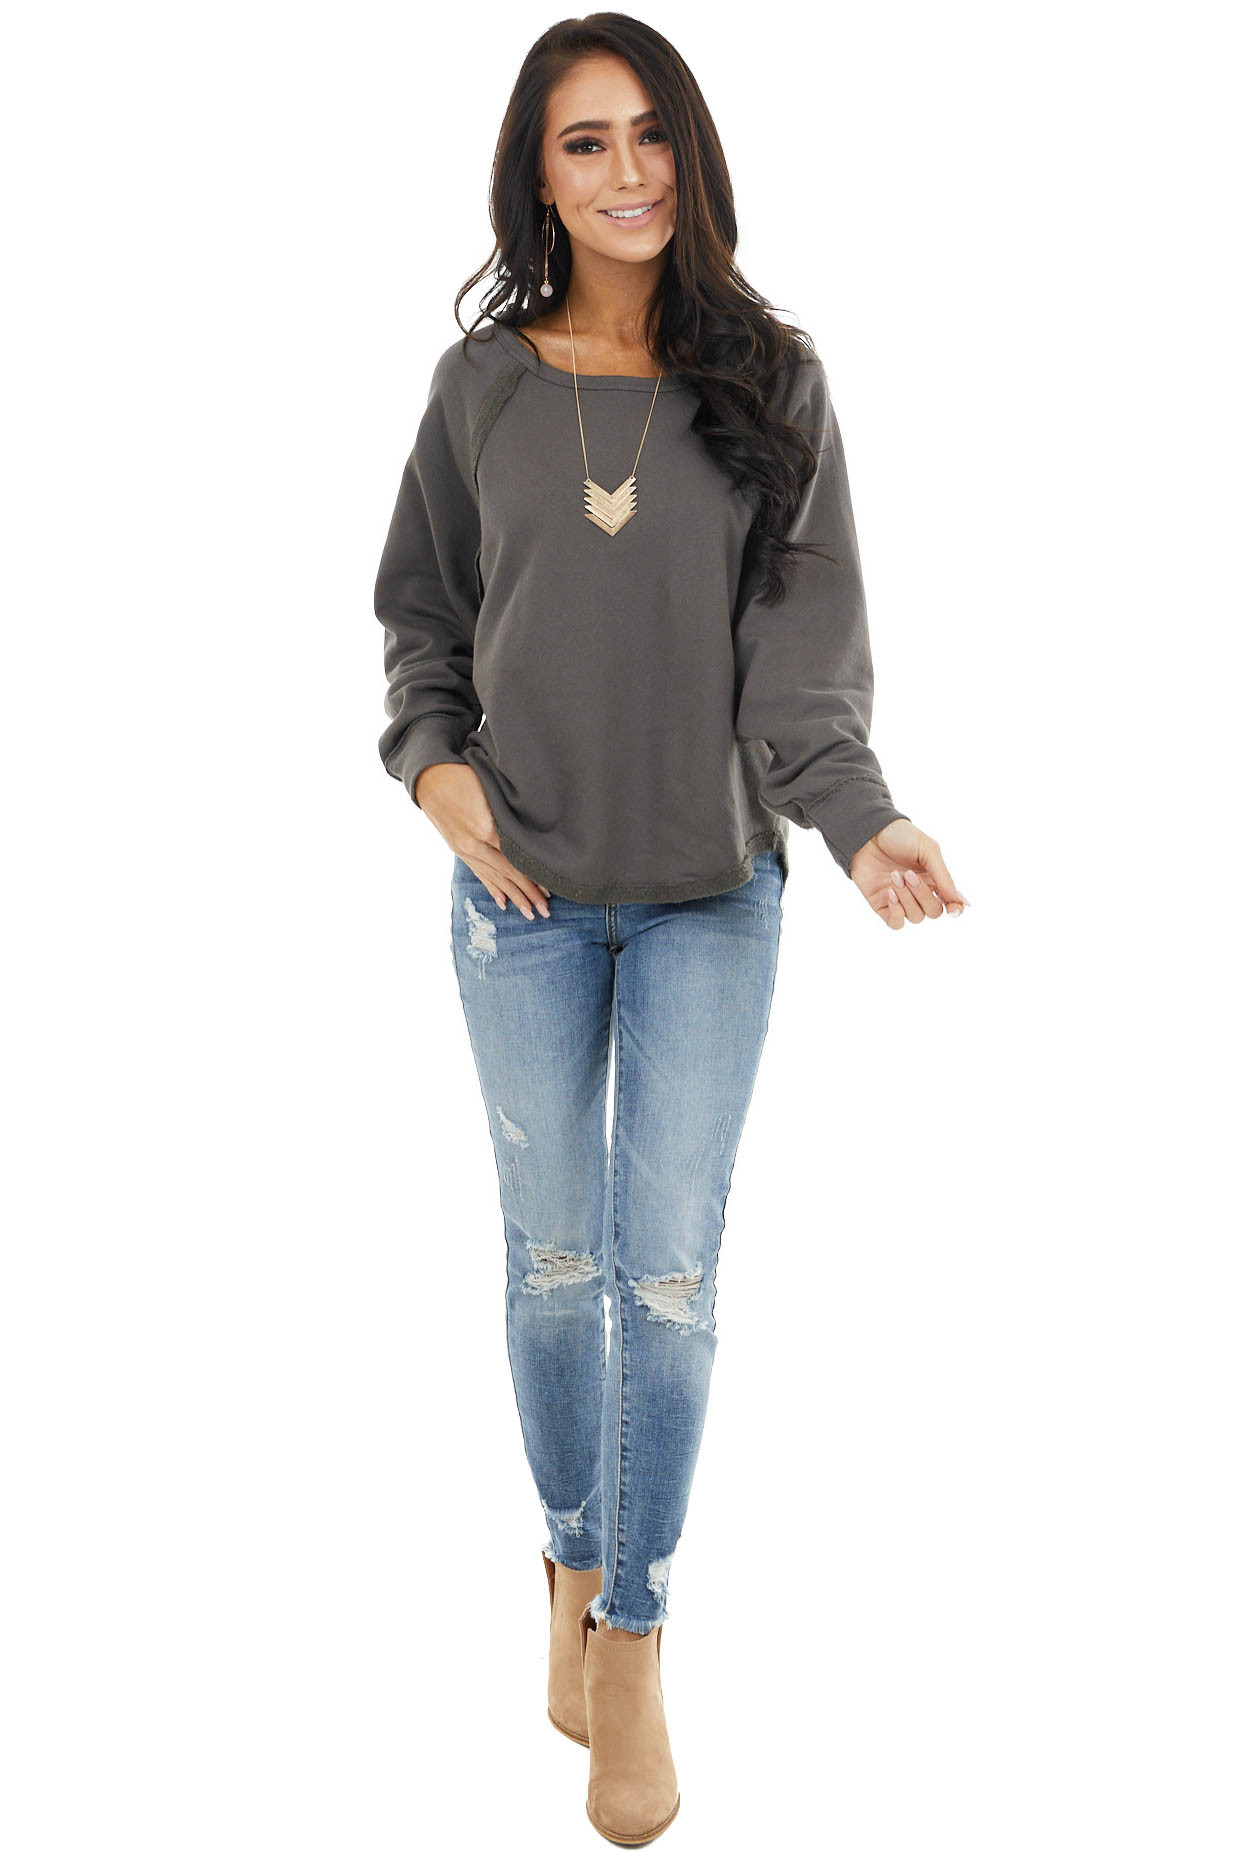 Charcoal Bat Wing Knit Top with Raw Reverse Stitch Details